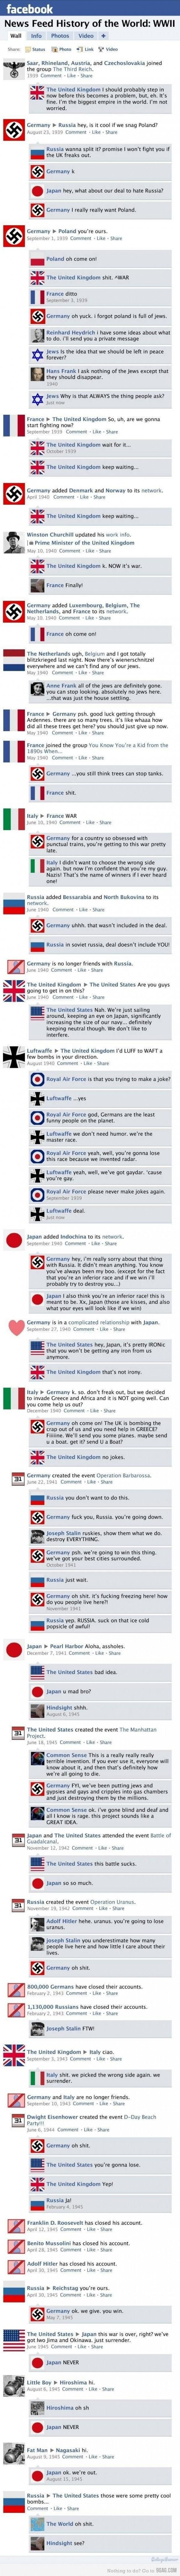 If Facebook existed during WWII.